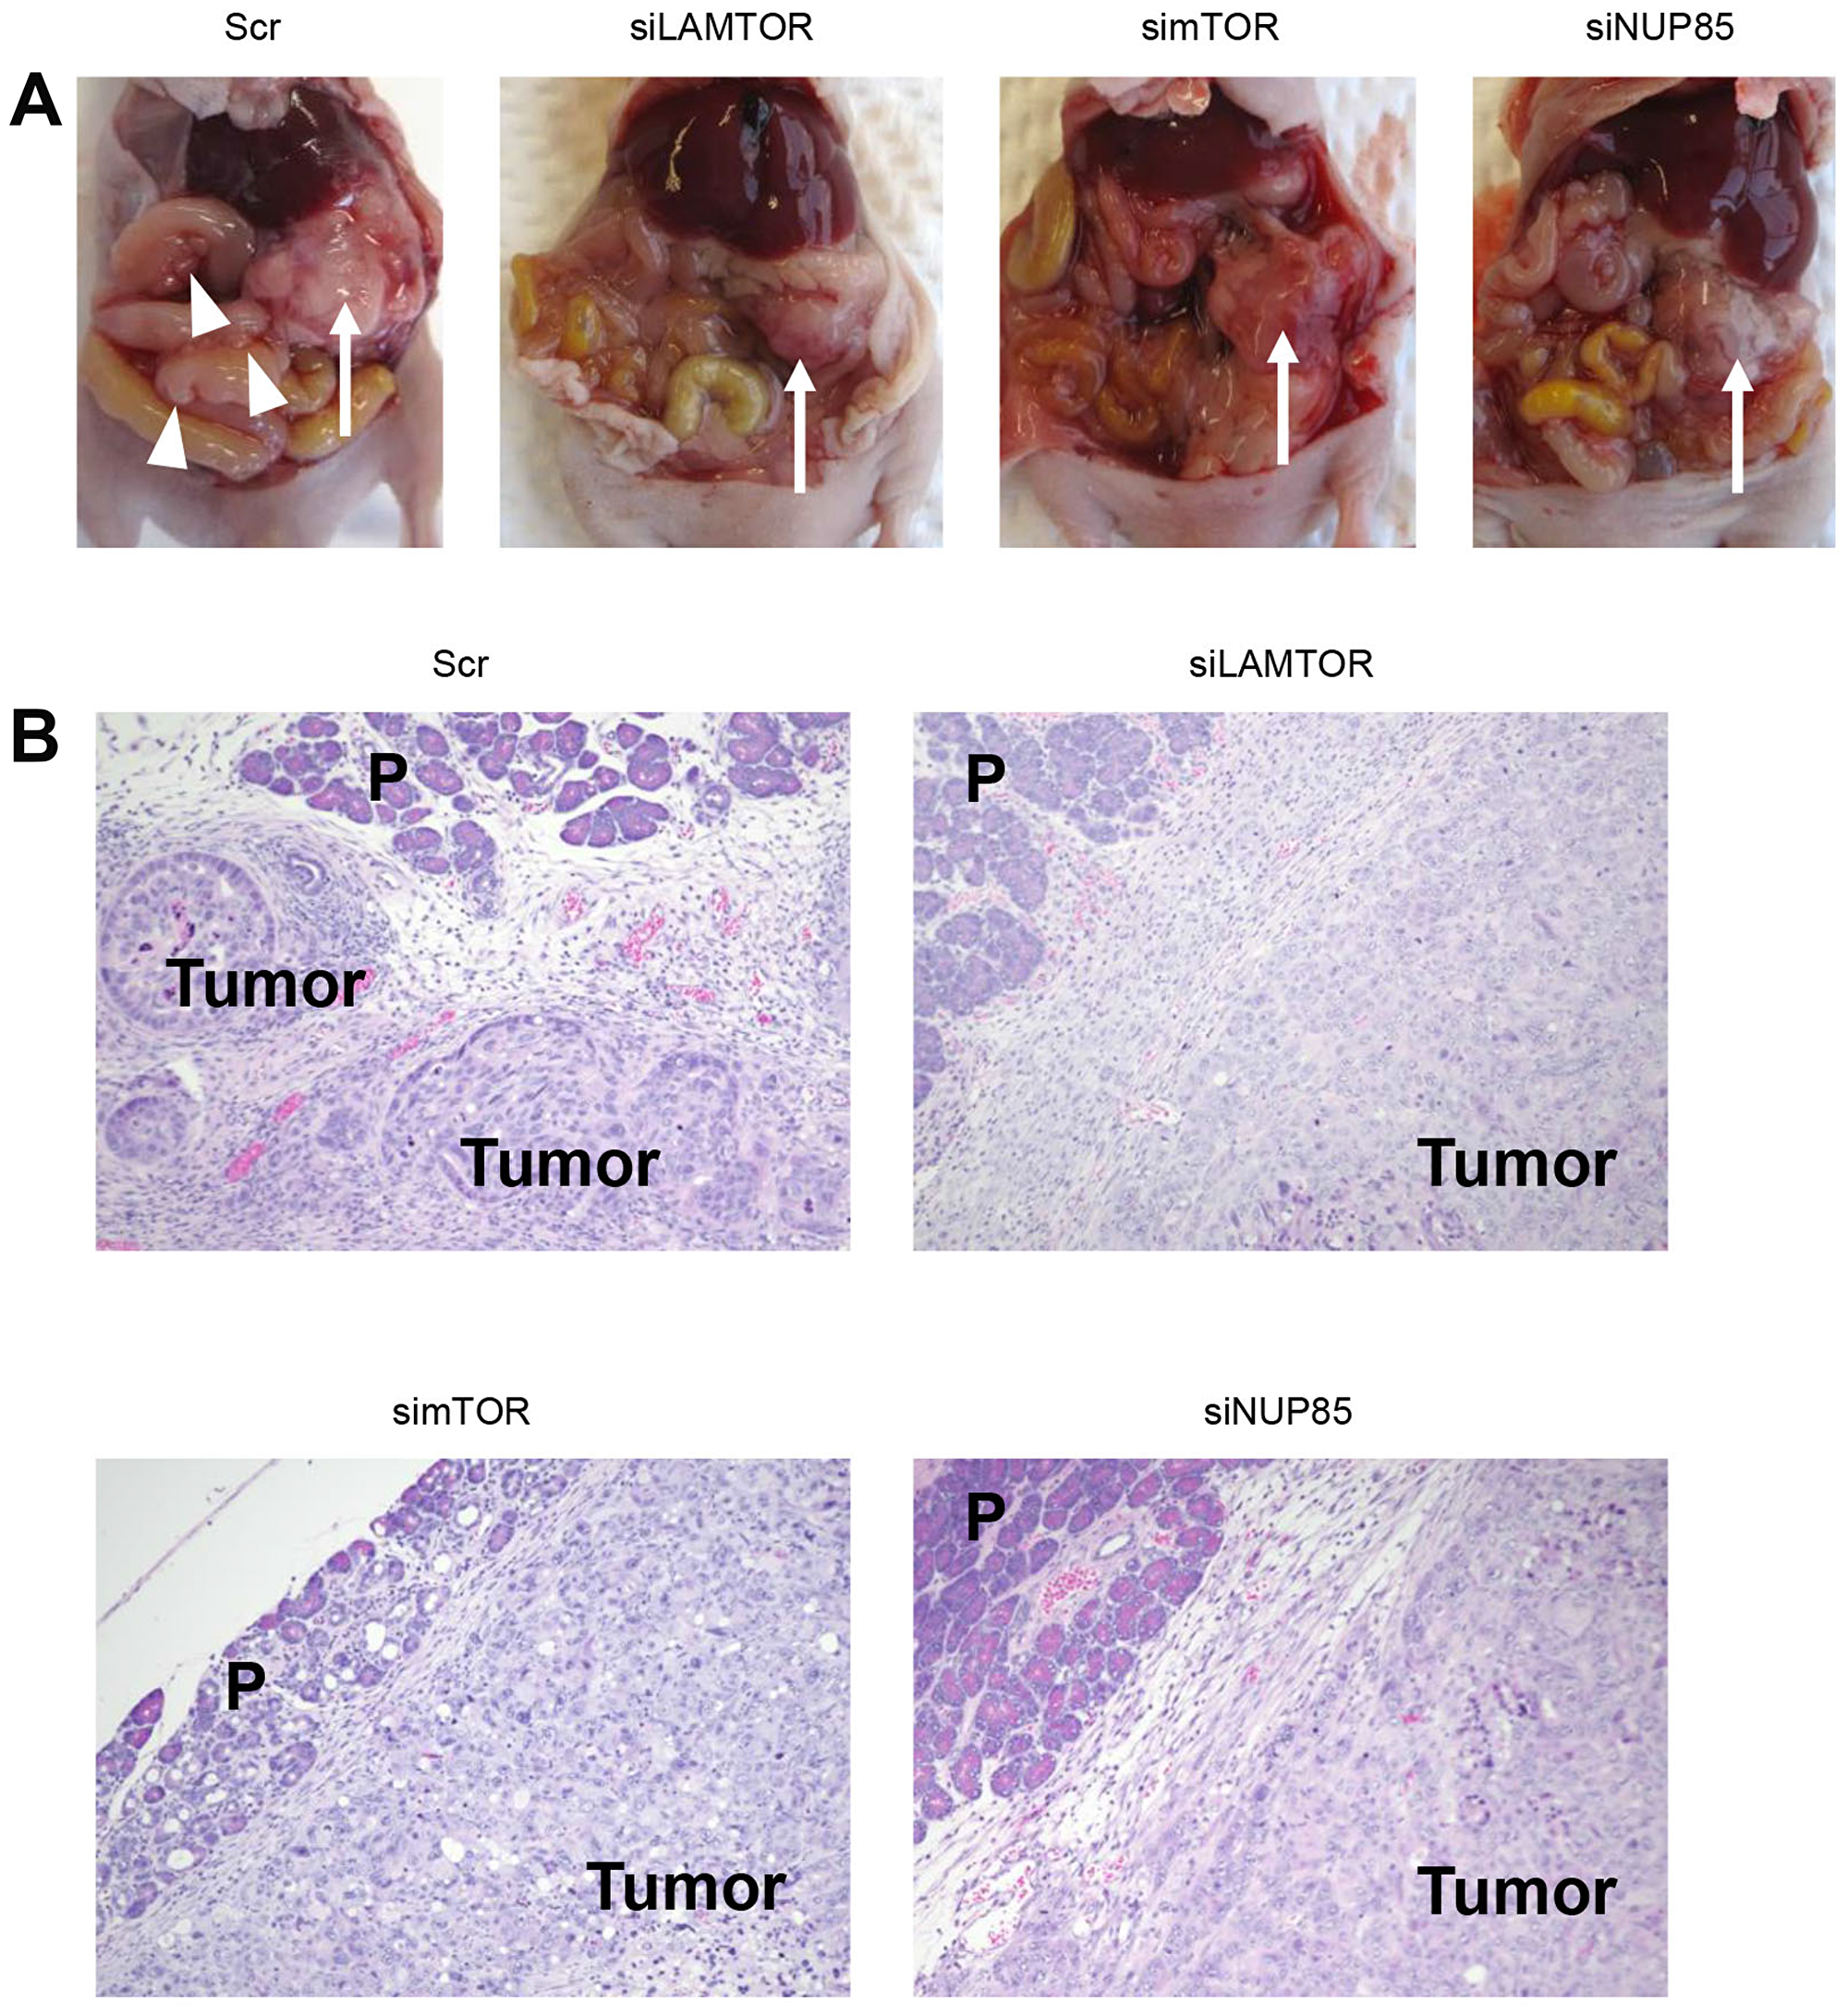 Disease progression in the orthotopic mouse model of PDAC.